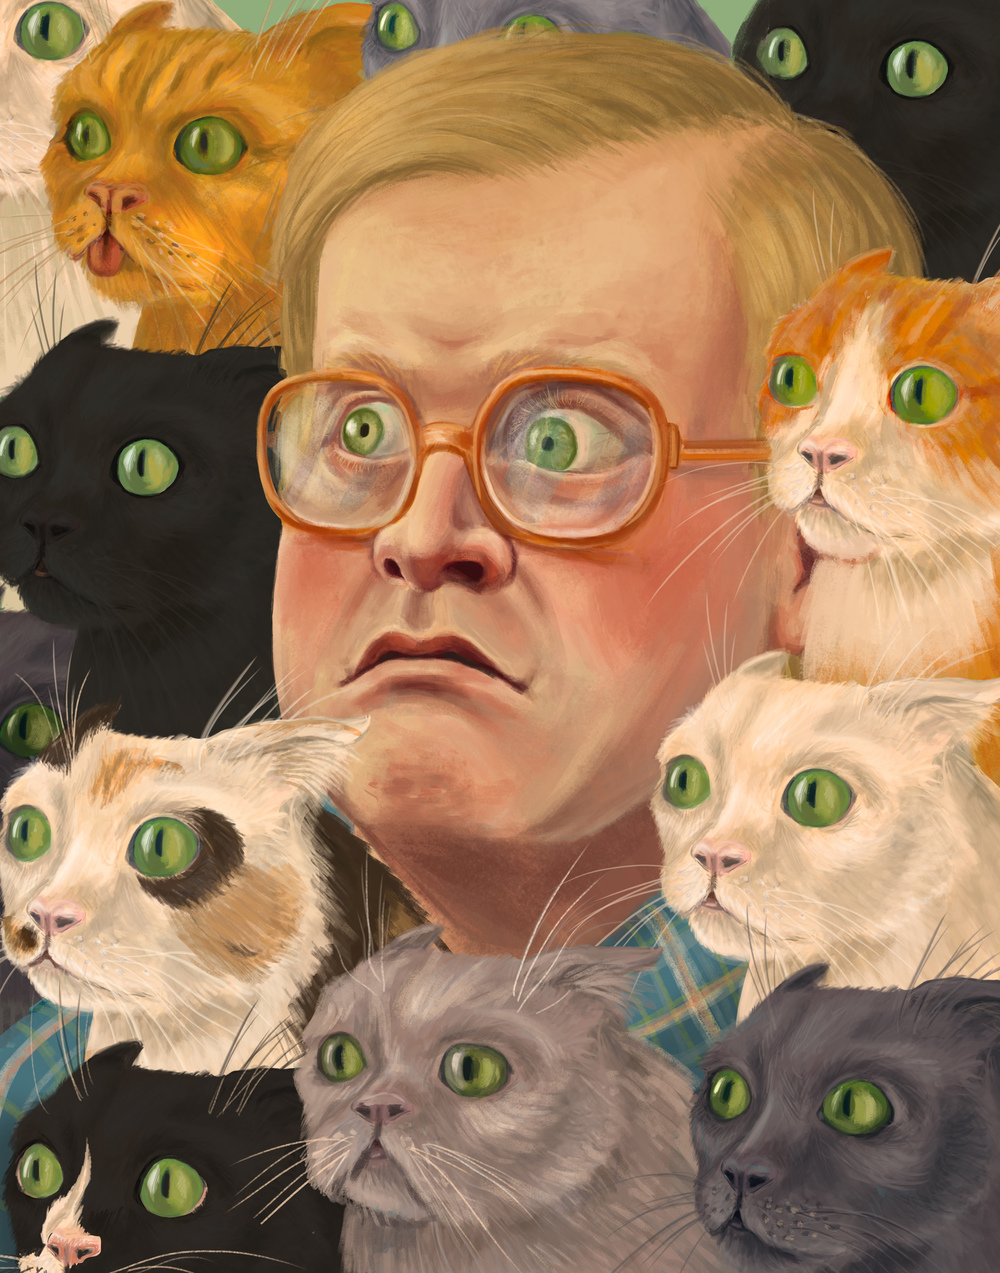 Bubbles - A portrait of Bubbles from the show Trailer Park Boys.